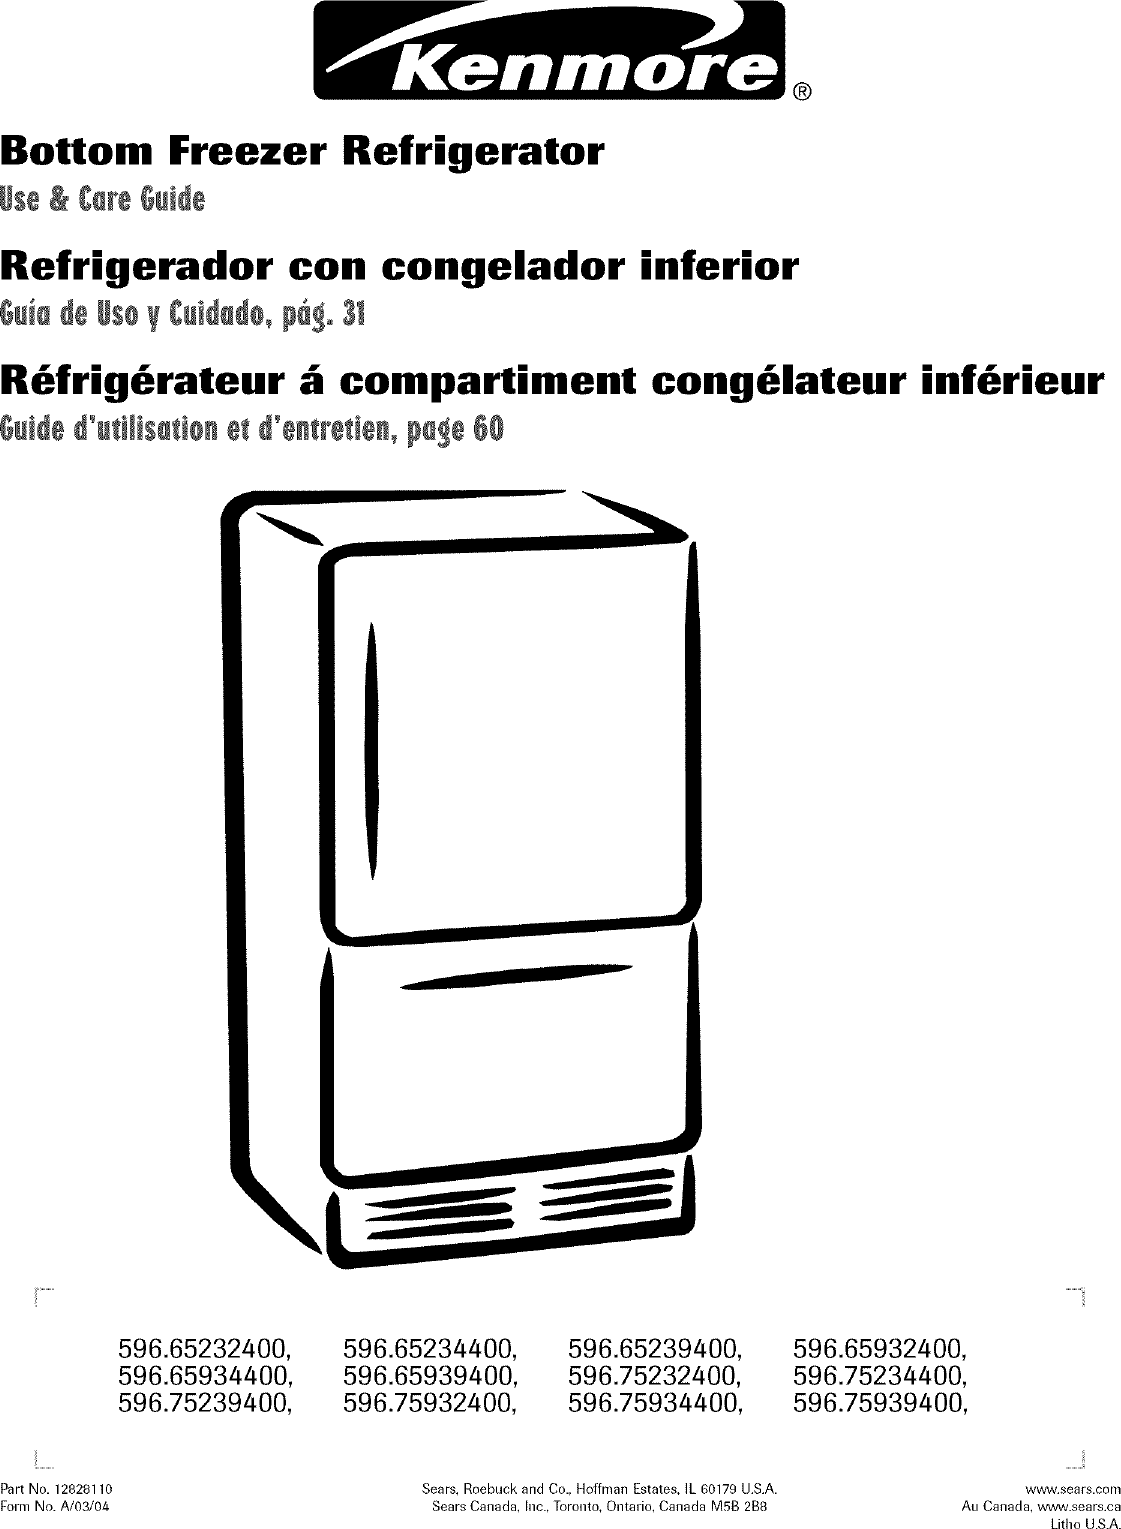 Kenmore 59665232400 User Manual REFRIGERATOR Manuals And